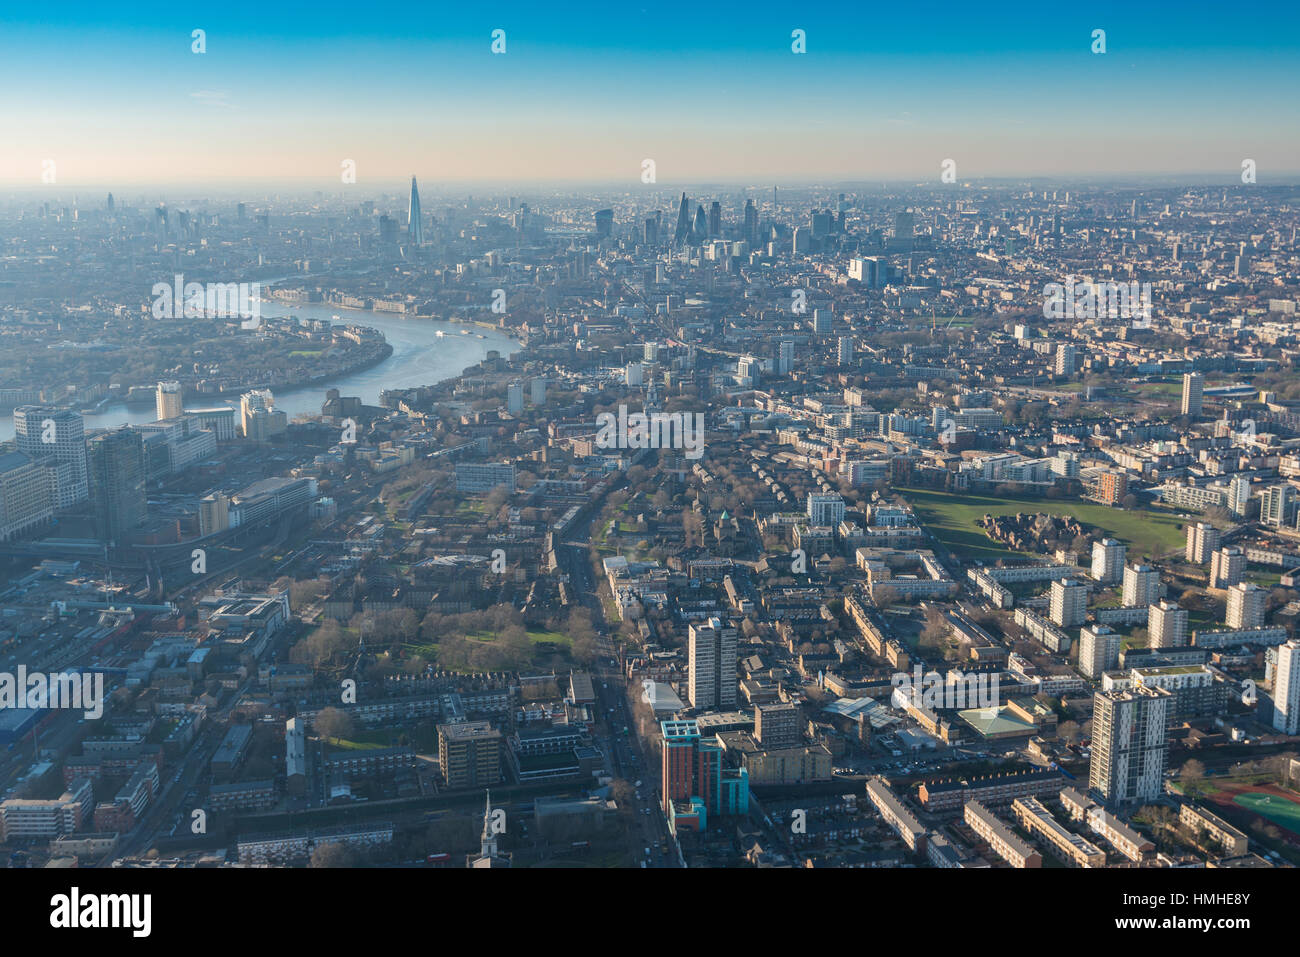 London from above, photo taken from a helicopter - Stock Image